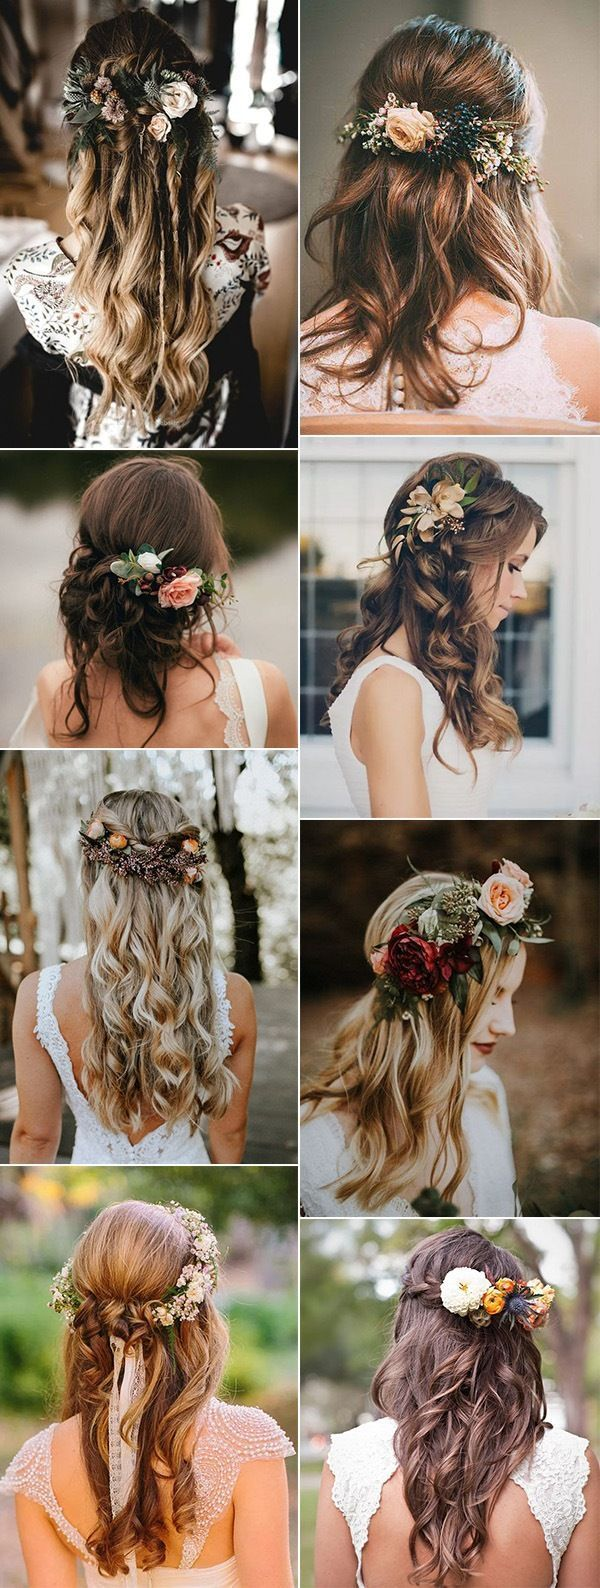 18 Pretty Fall Hairstyles That Inspire - Hairstyles Medium-Length Hair - #the # Hairstyles #Hair #Fall Hairstyles # Pretty